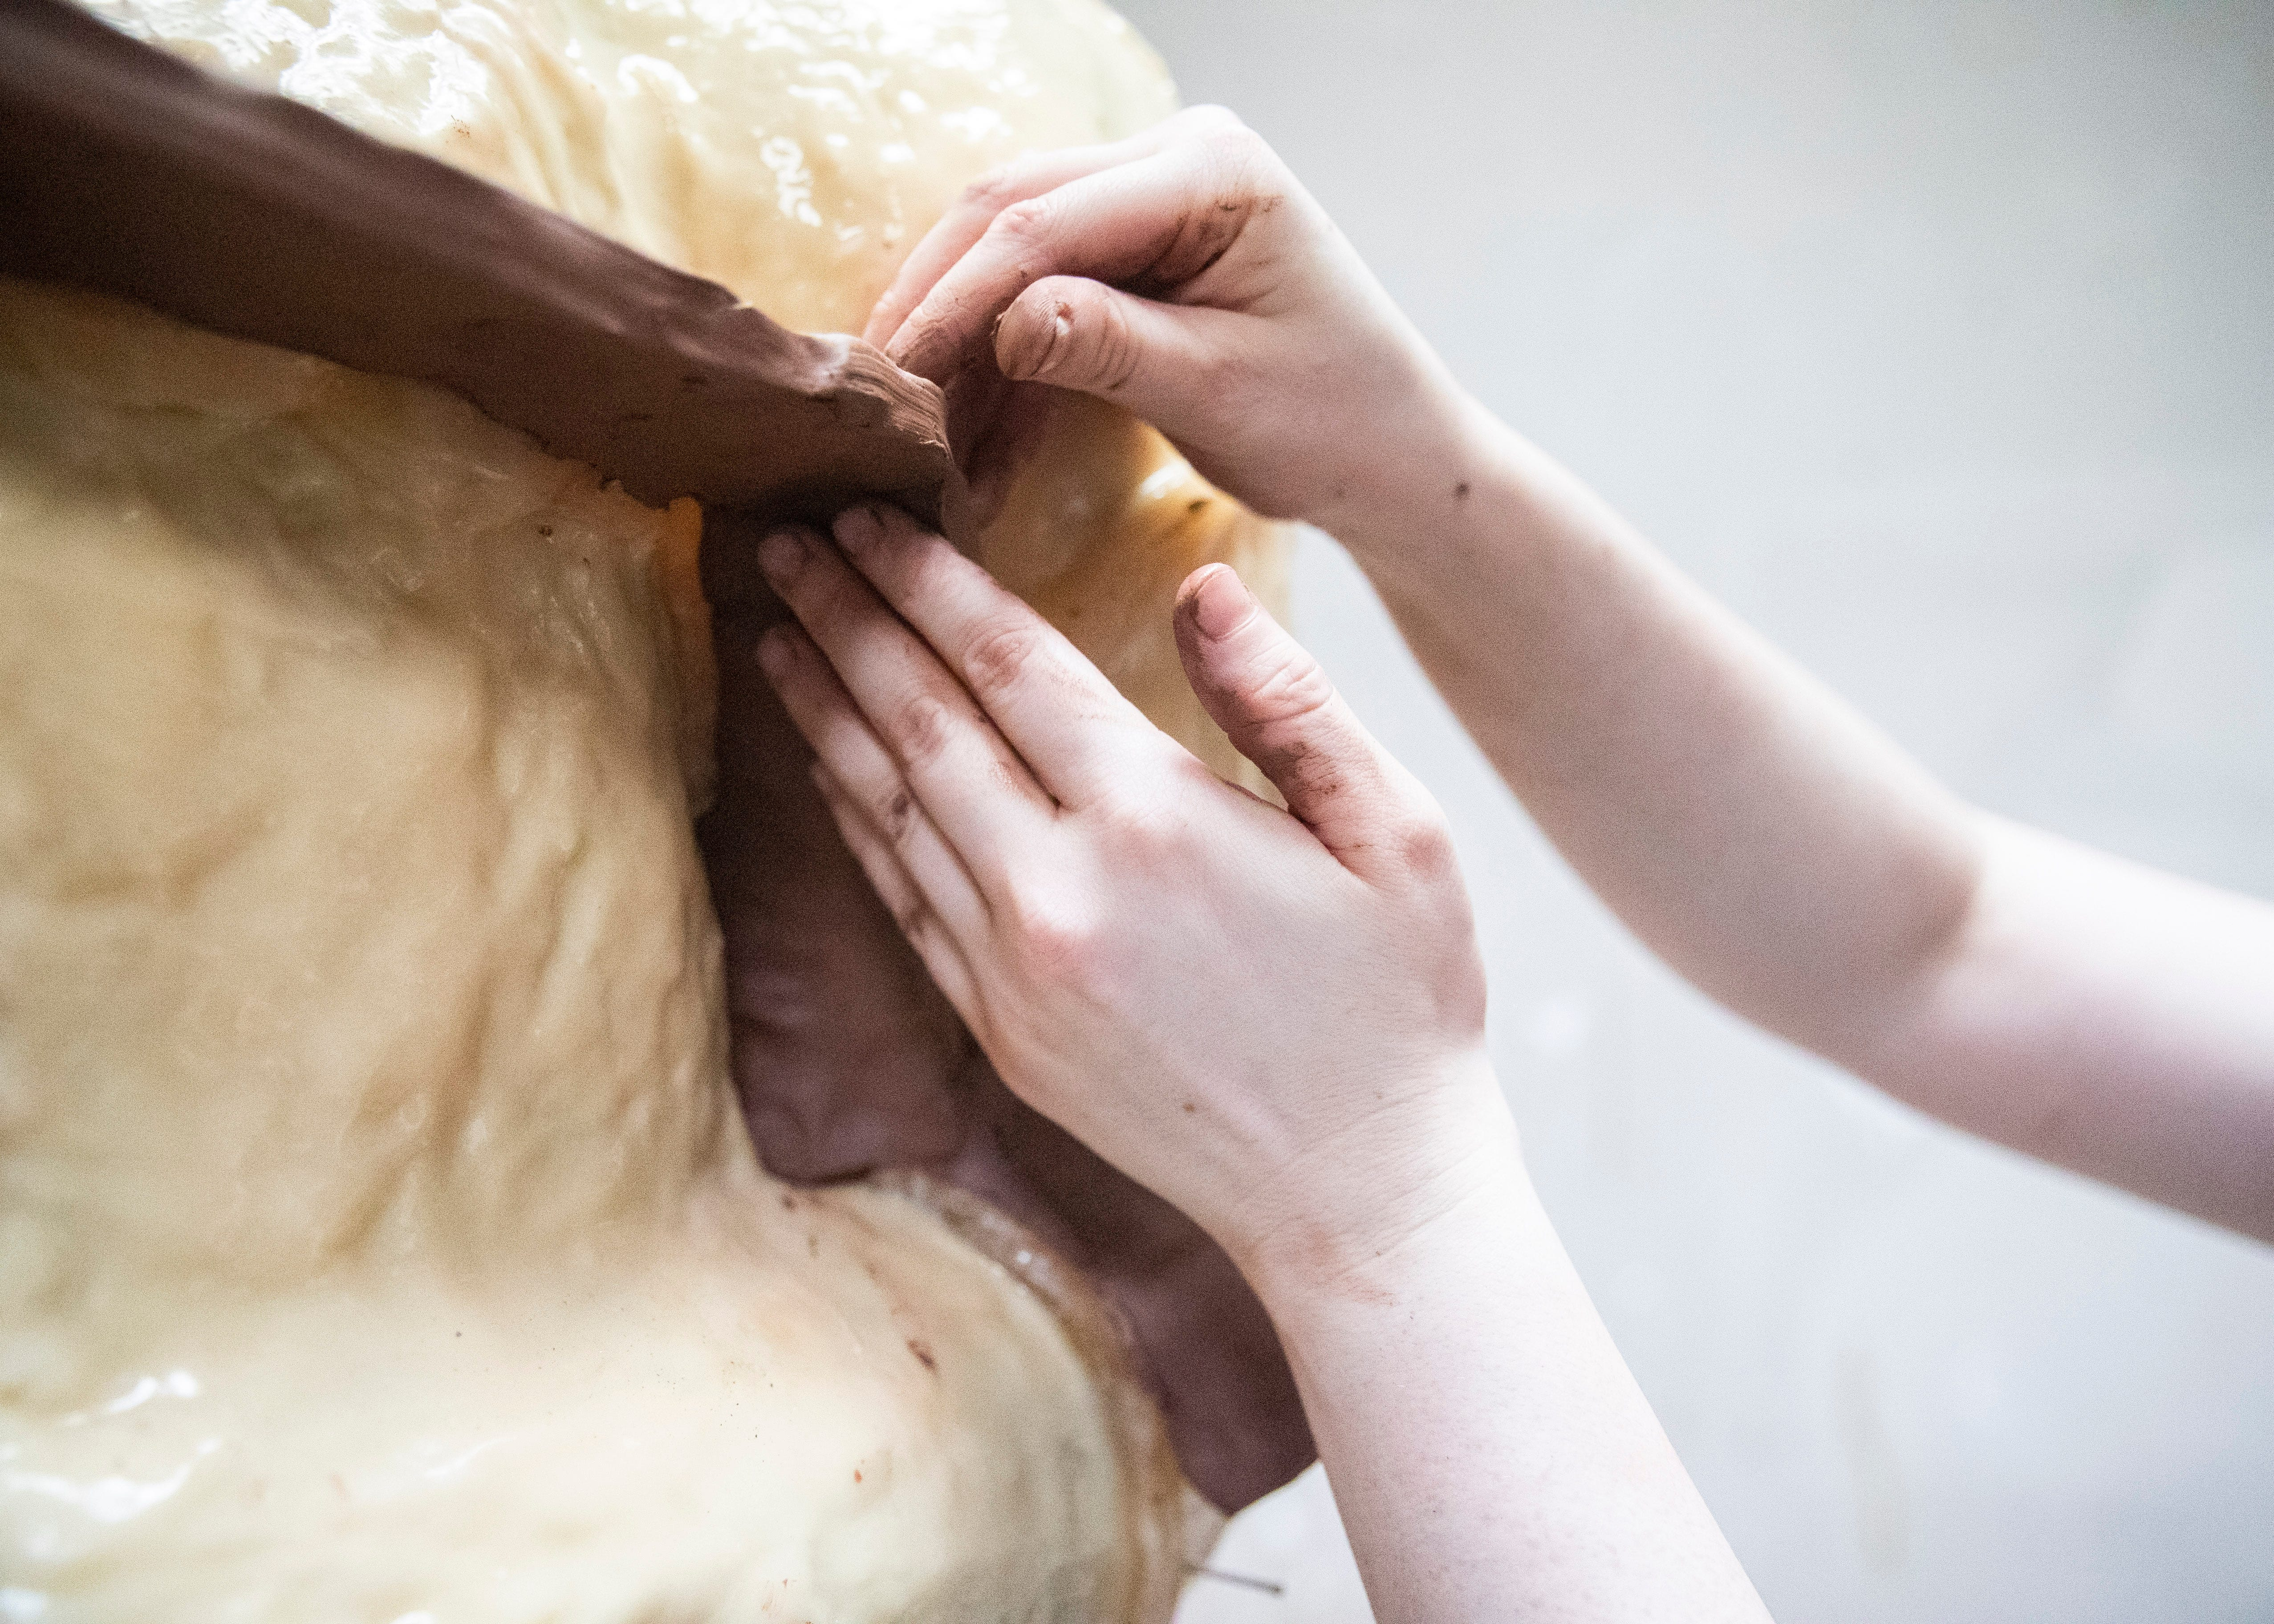 Artisan Emily Hogan makes clay walls to create the statue of  Ida B. Wells-Barnett, the African American civil rights advocate and journalist who fought against racism, segregation and lynching, at the Lugar Bronze Foundry in Eads, Tenn., on Tuesday, May 26, 2021.